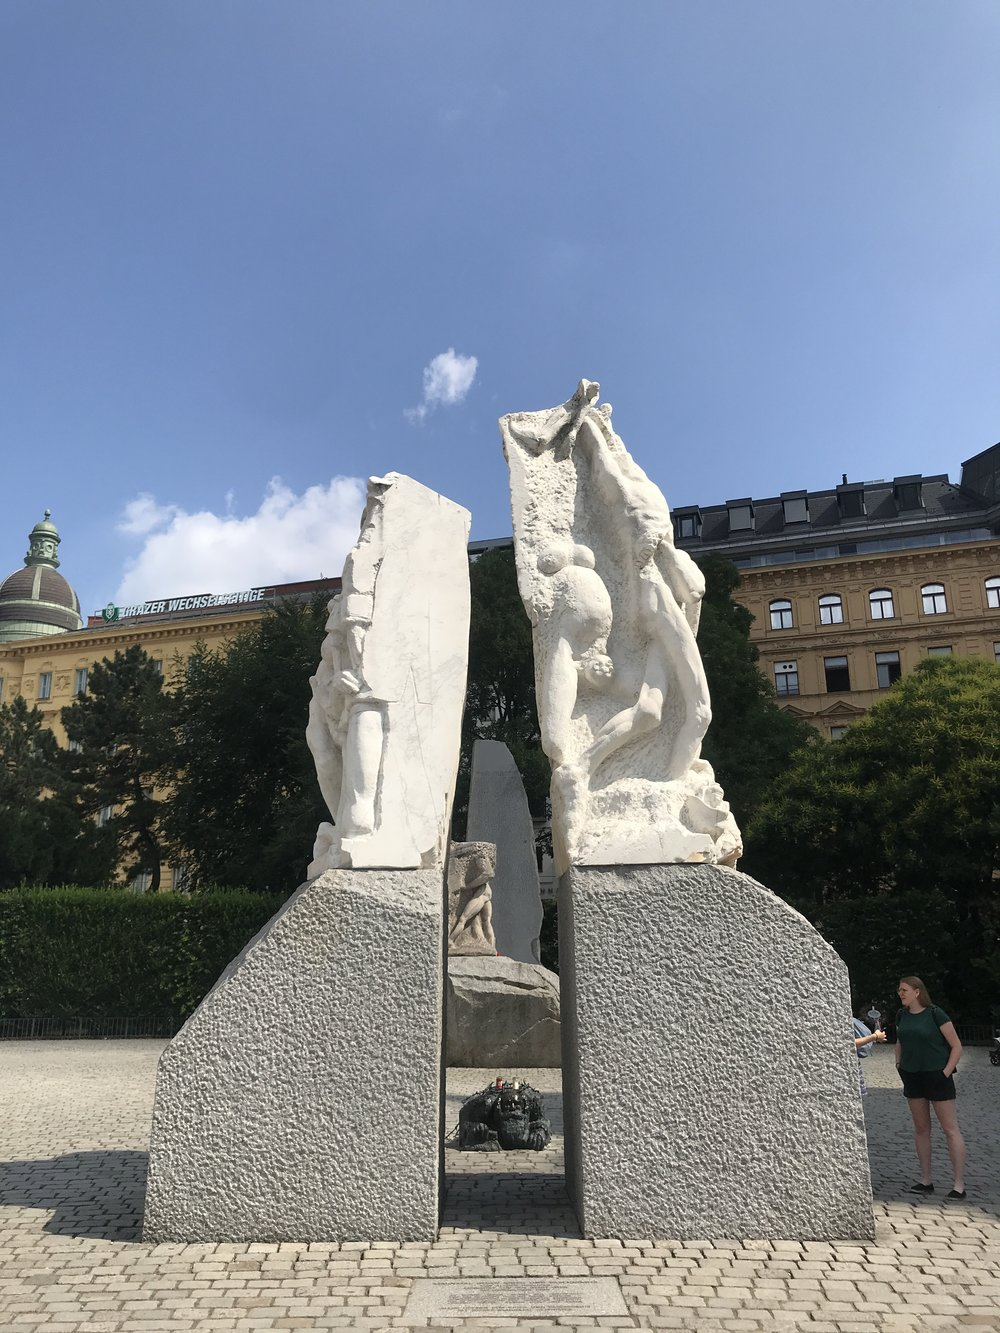 The Monument Against War and Fascism, which commemorates the dark years when Austria came under Nazi rule between 1938 and 1945, was near the free tour's meeting point at the Albertinaplatz